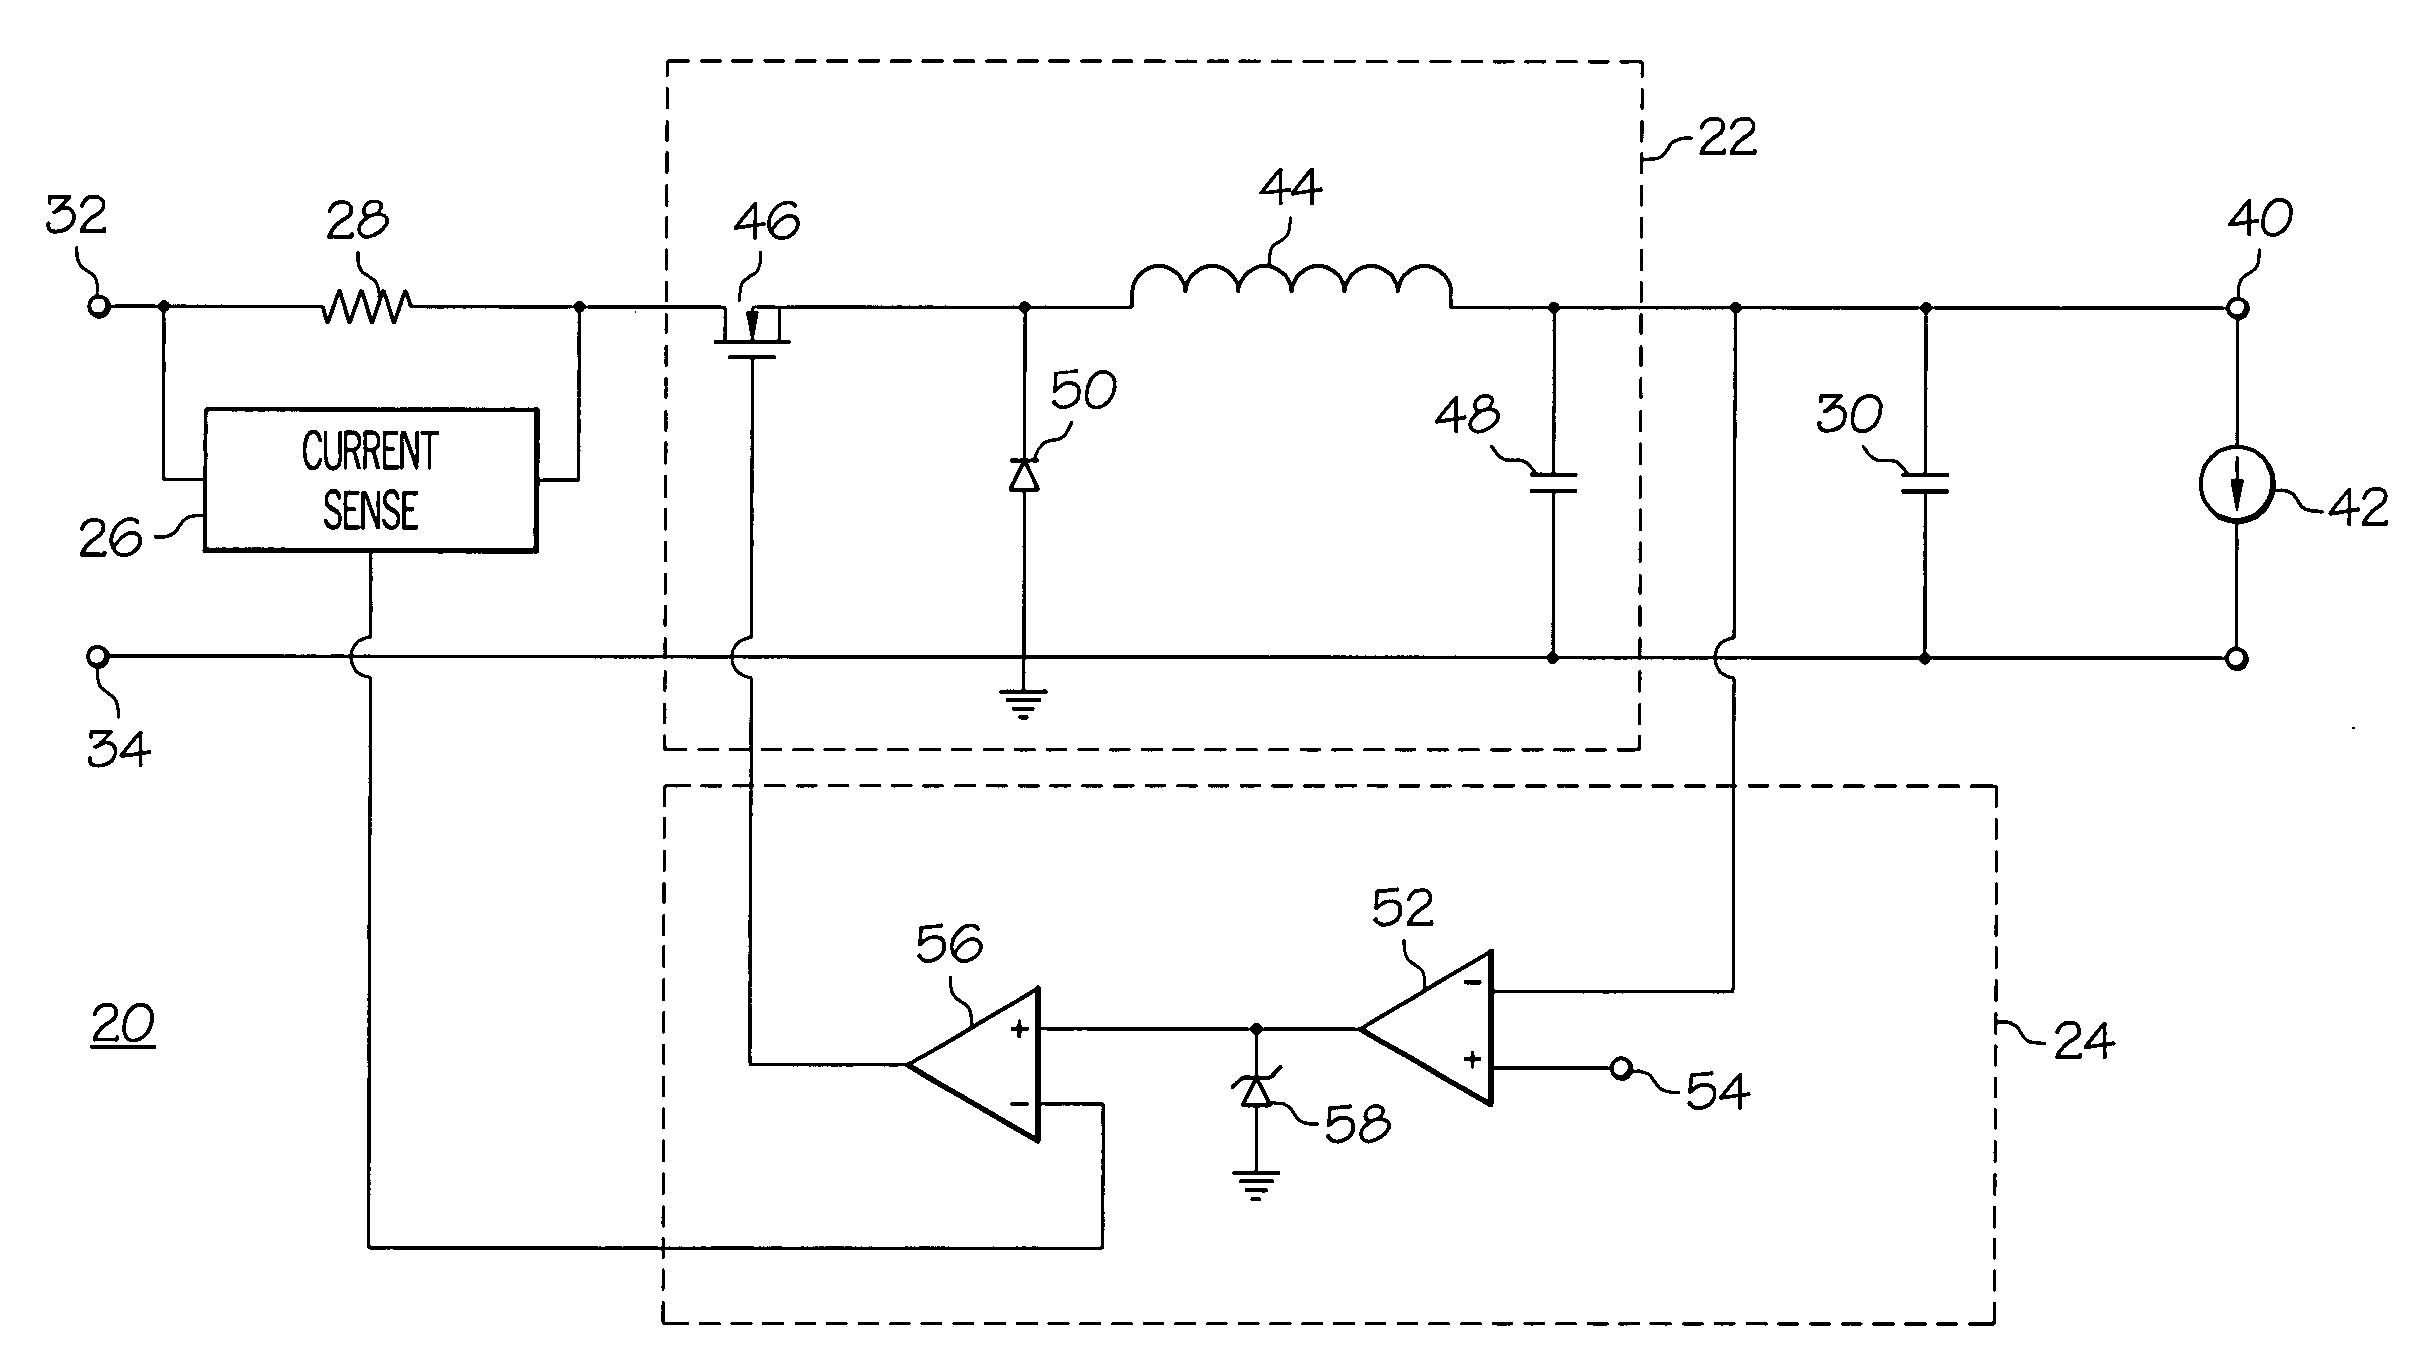 Patent Us7449870 Circuitry And Method For Limiting Peak Current Circuit Diagram Voltage Source Drawing